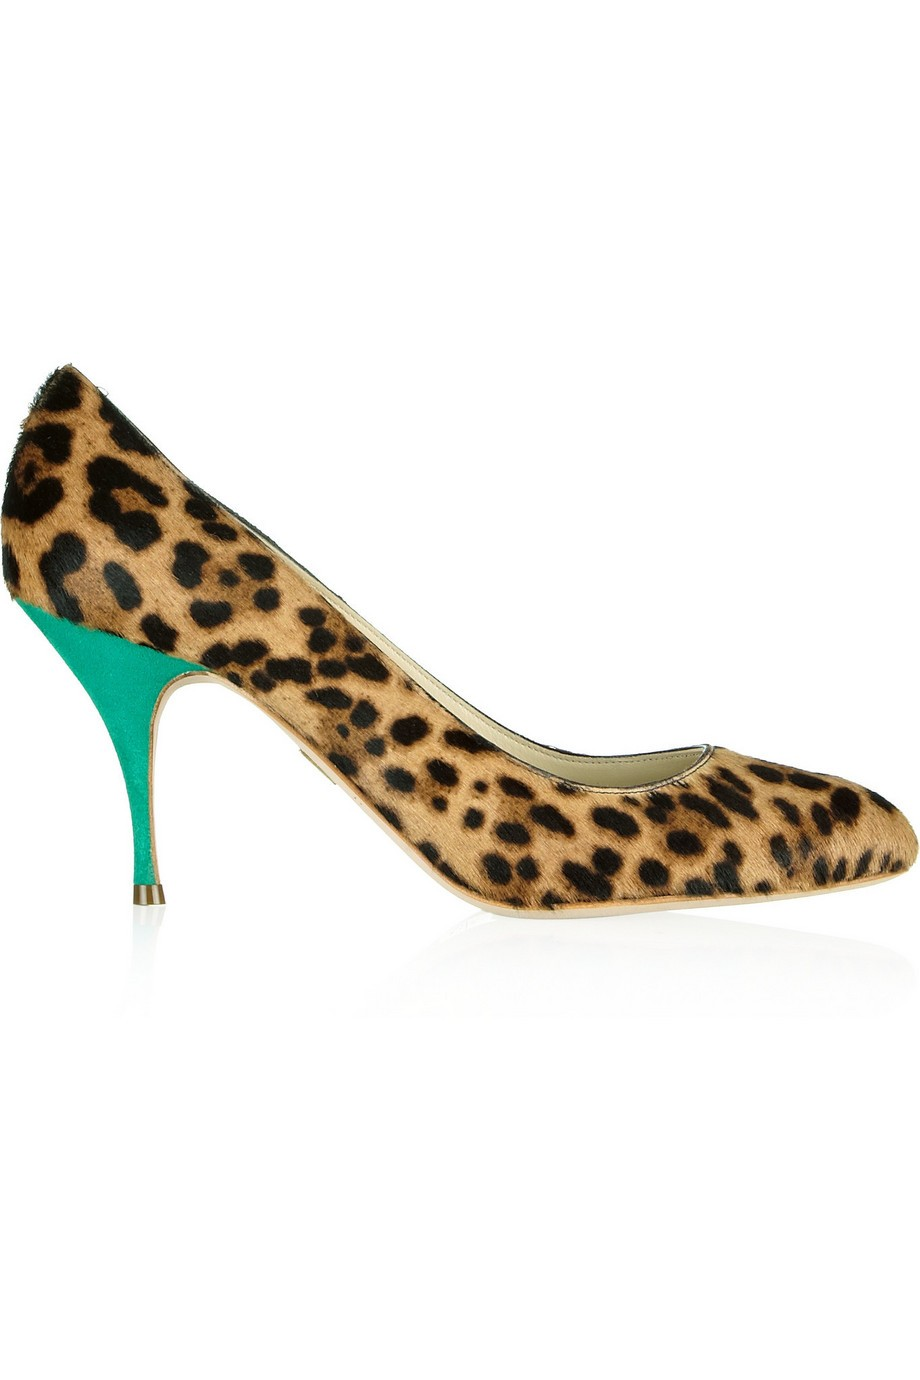 Starlet leopard-print calf hair pumps